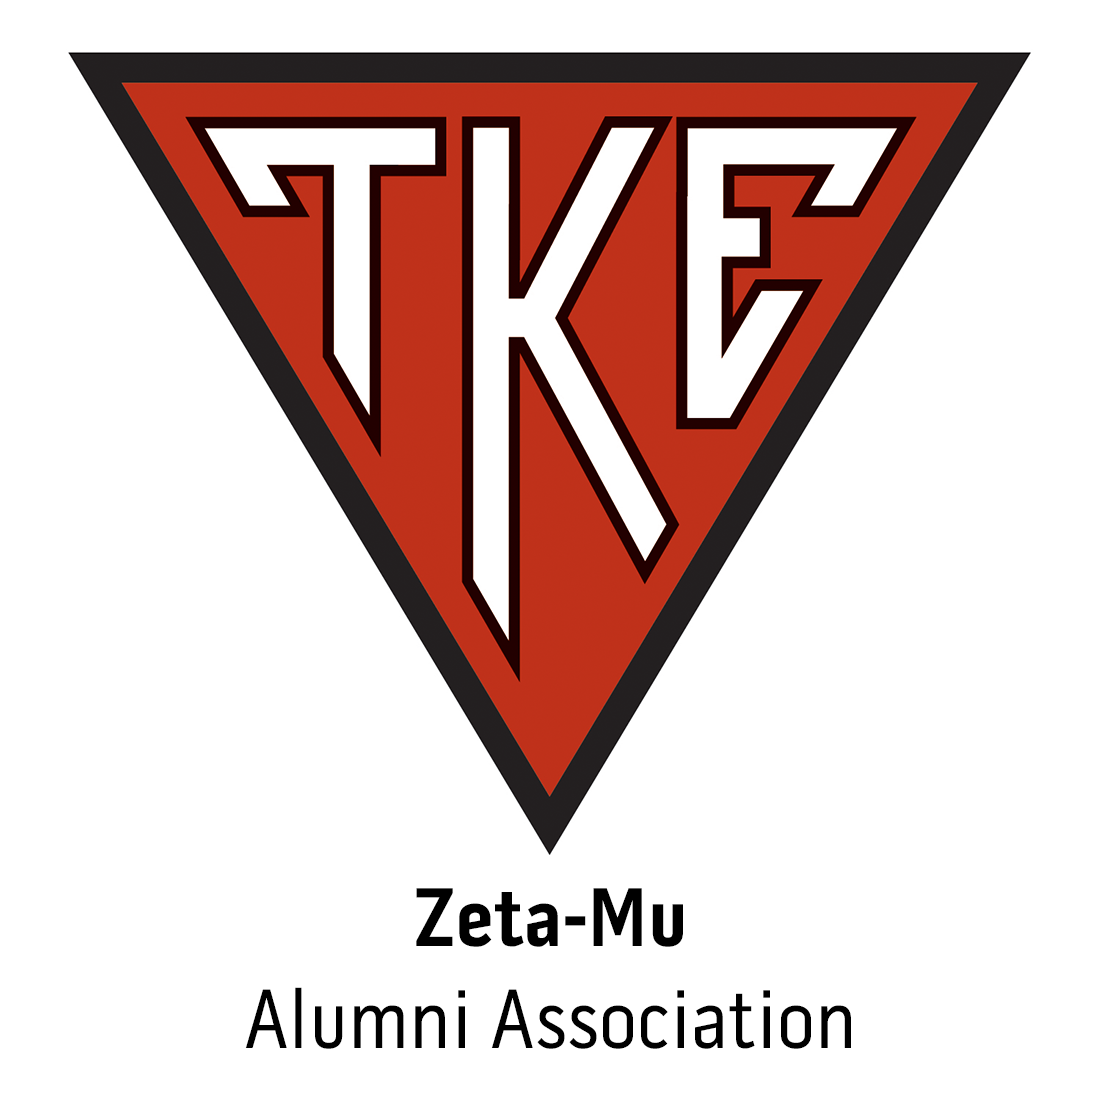 Zeta-Mu Alumni Association for Worcester Polytechnic Institute